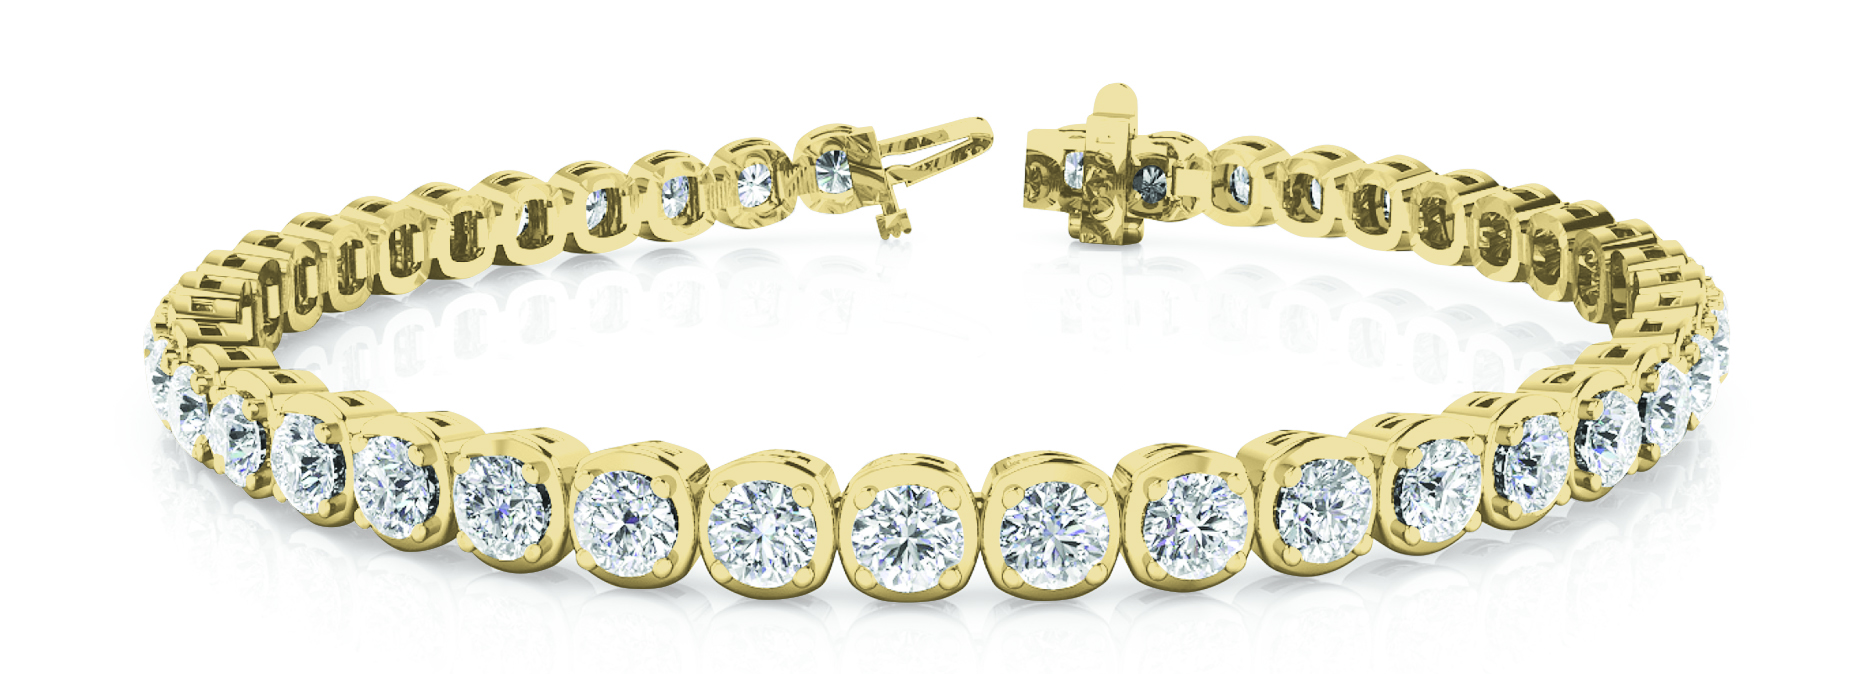 3 Carat Round Diamond Cushion Tennis Bracelet Yellow Gold